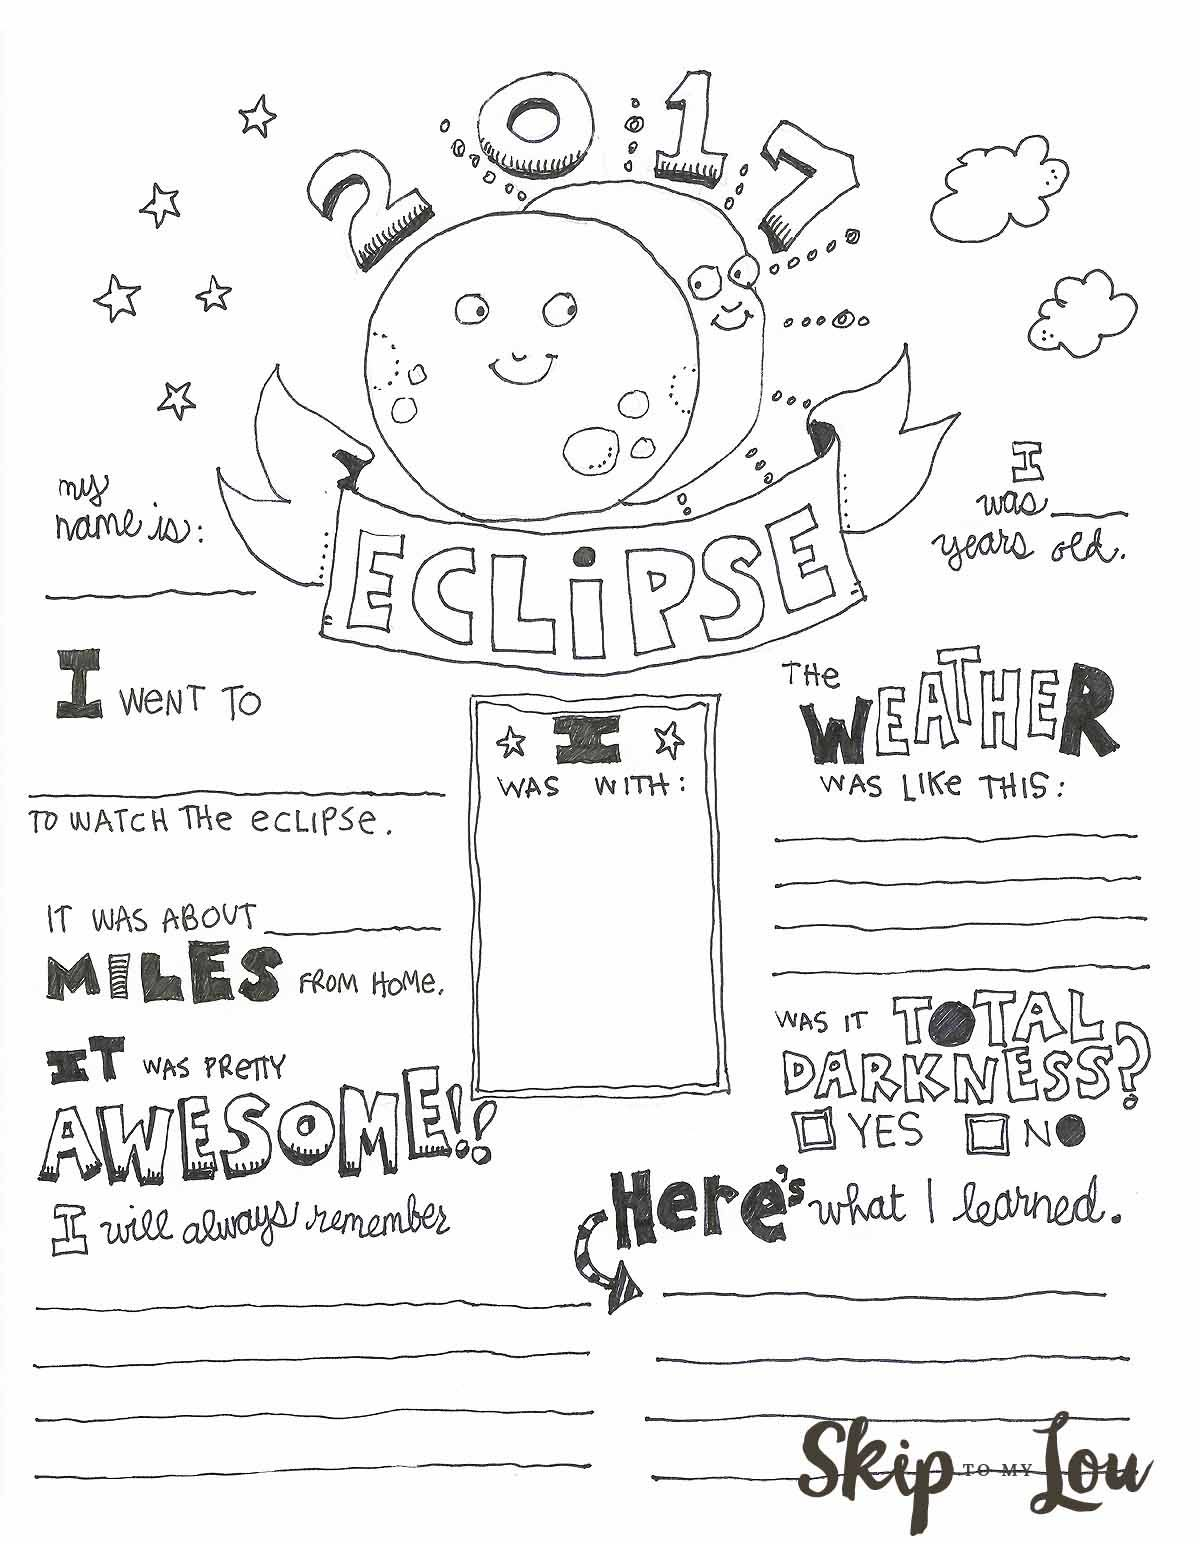 Solar Eclipse Coloring Page Also Known As An Eclipse